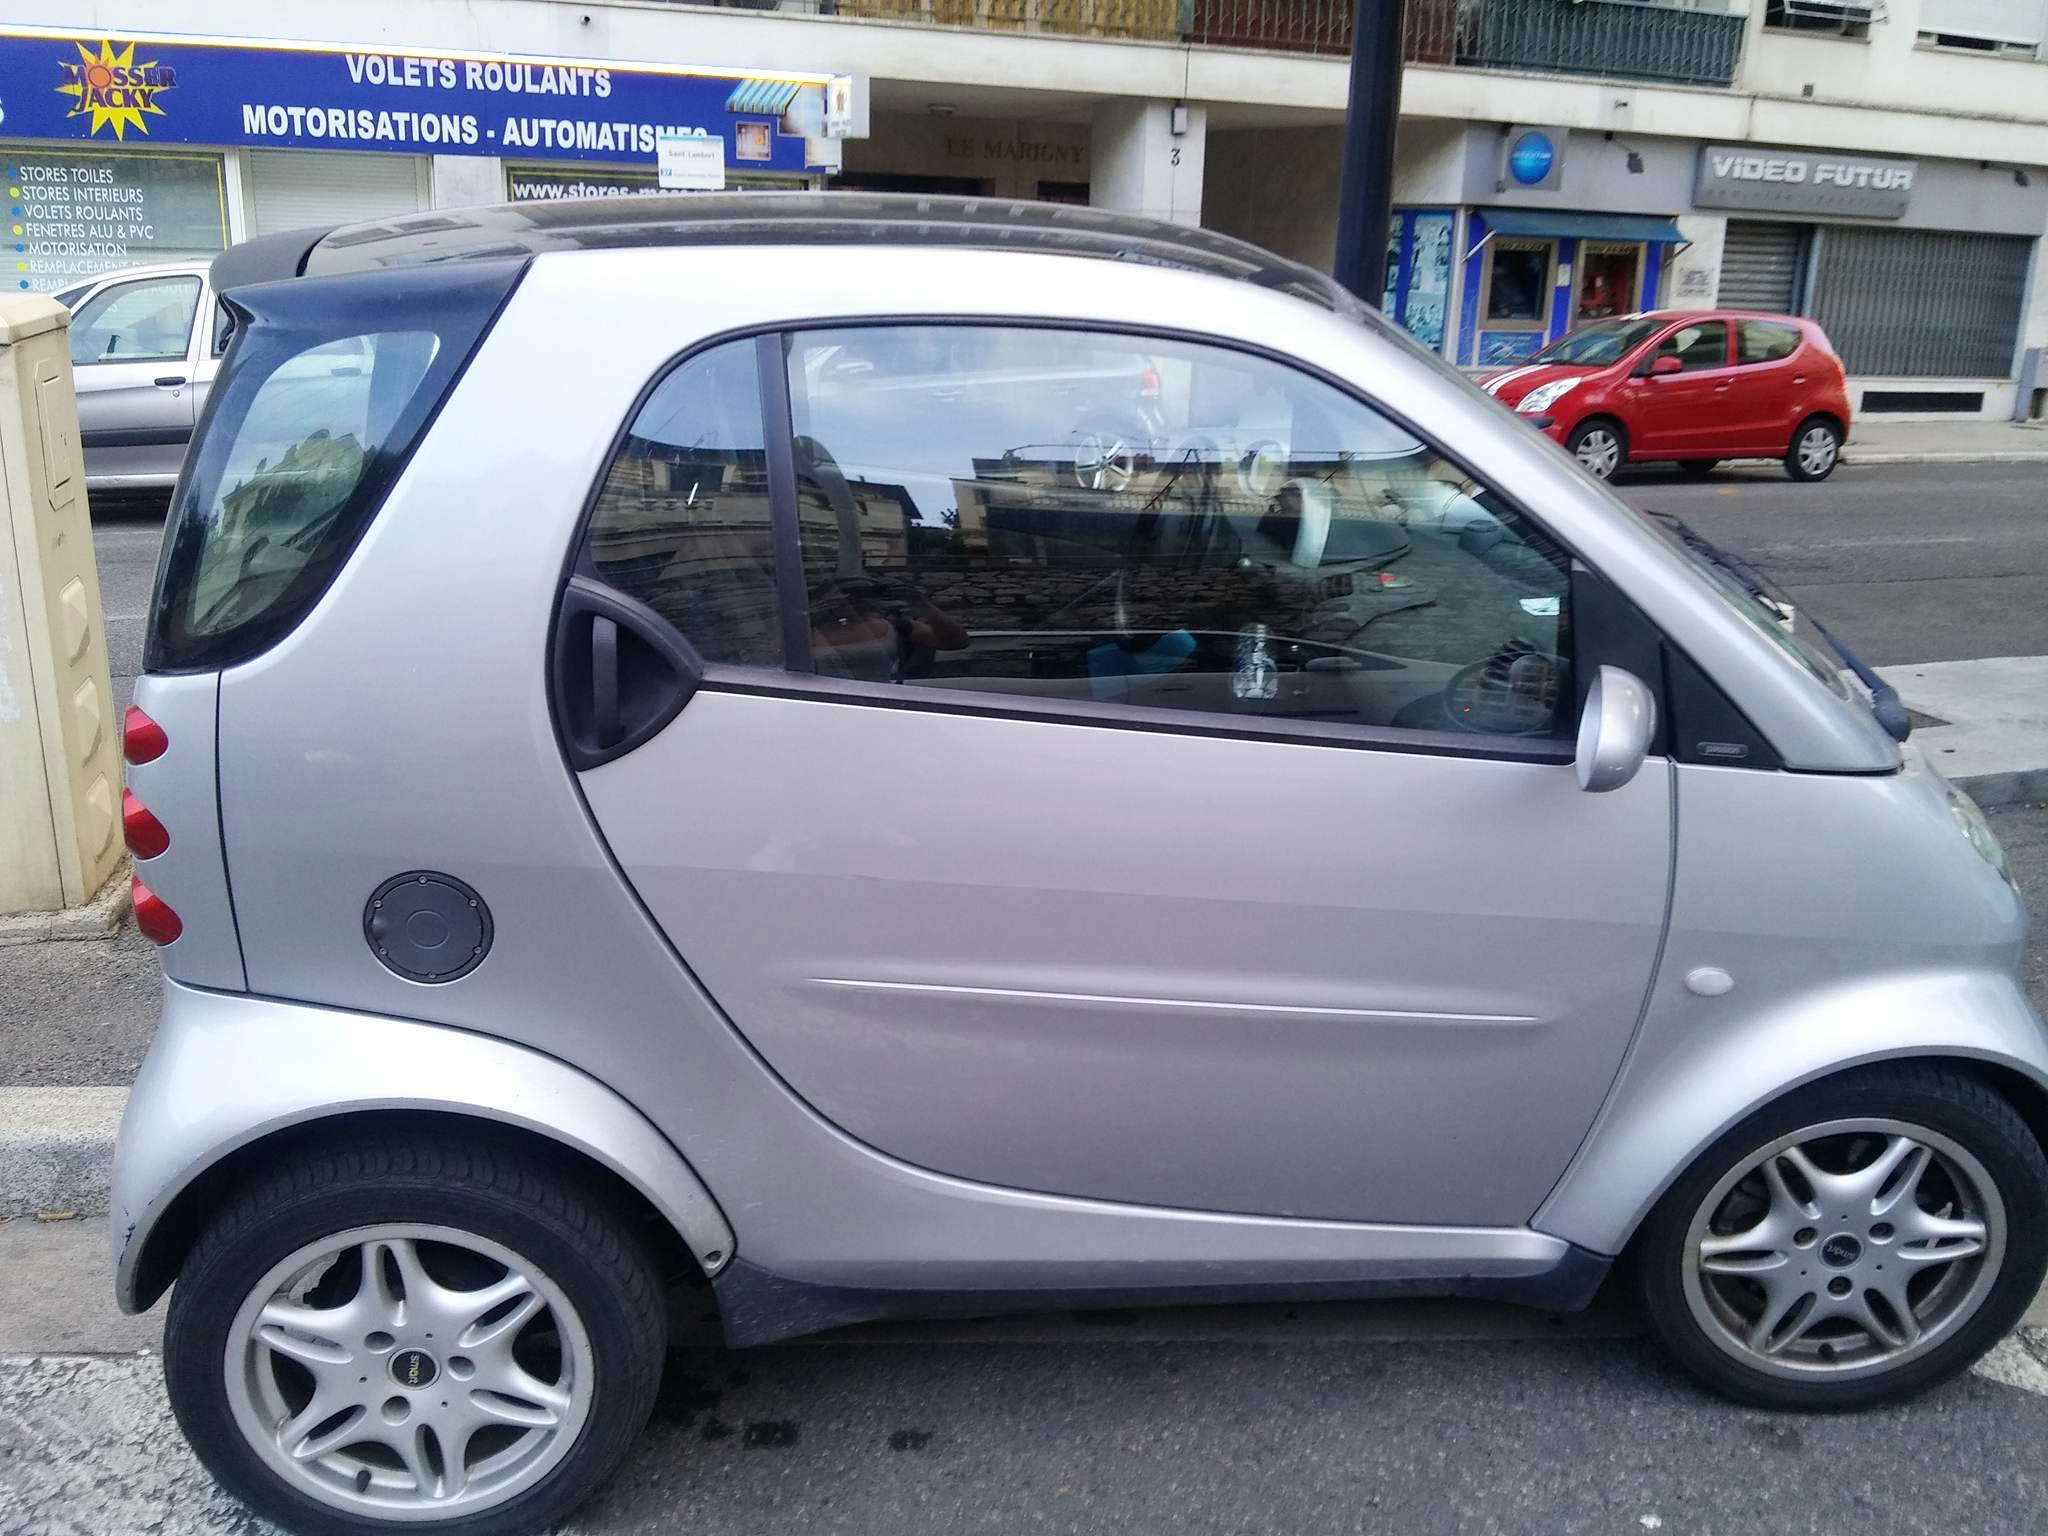 Smart Fortwo Smartpure Toit panoramique, 2001, Essence, automatique